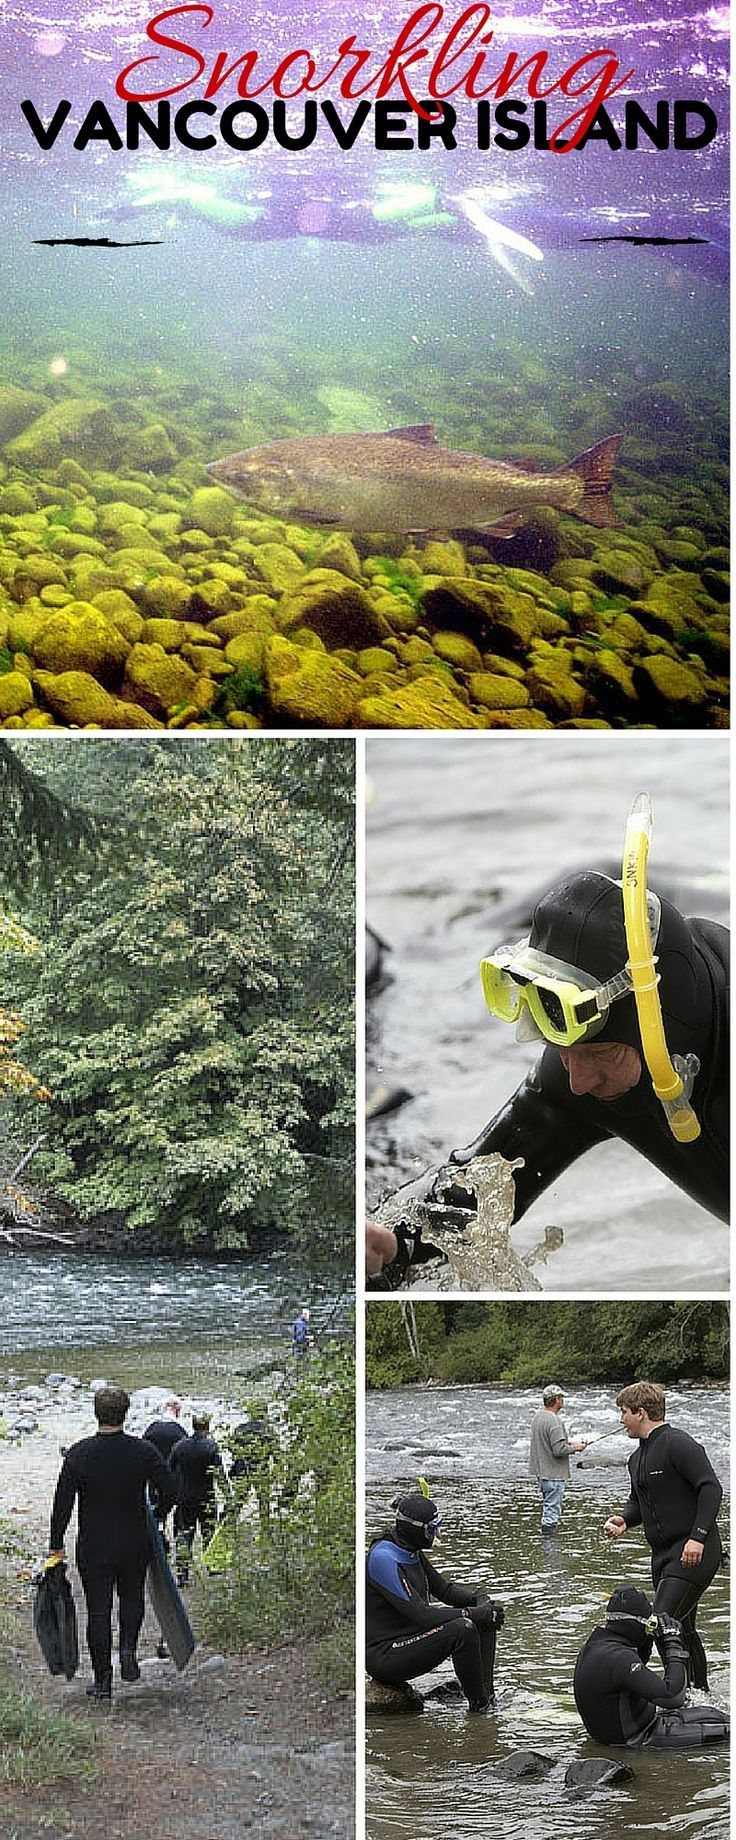 Campbell River is a salmon spawning stream that flows from Vancouver  Island's rugged interior